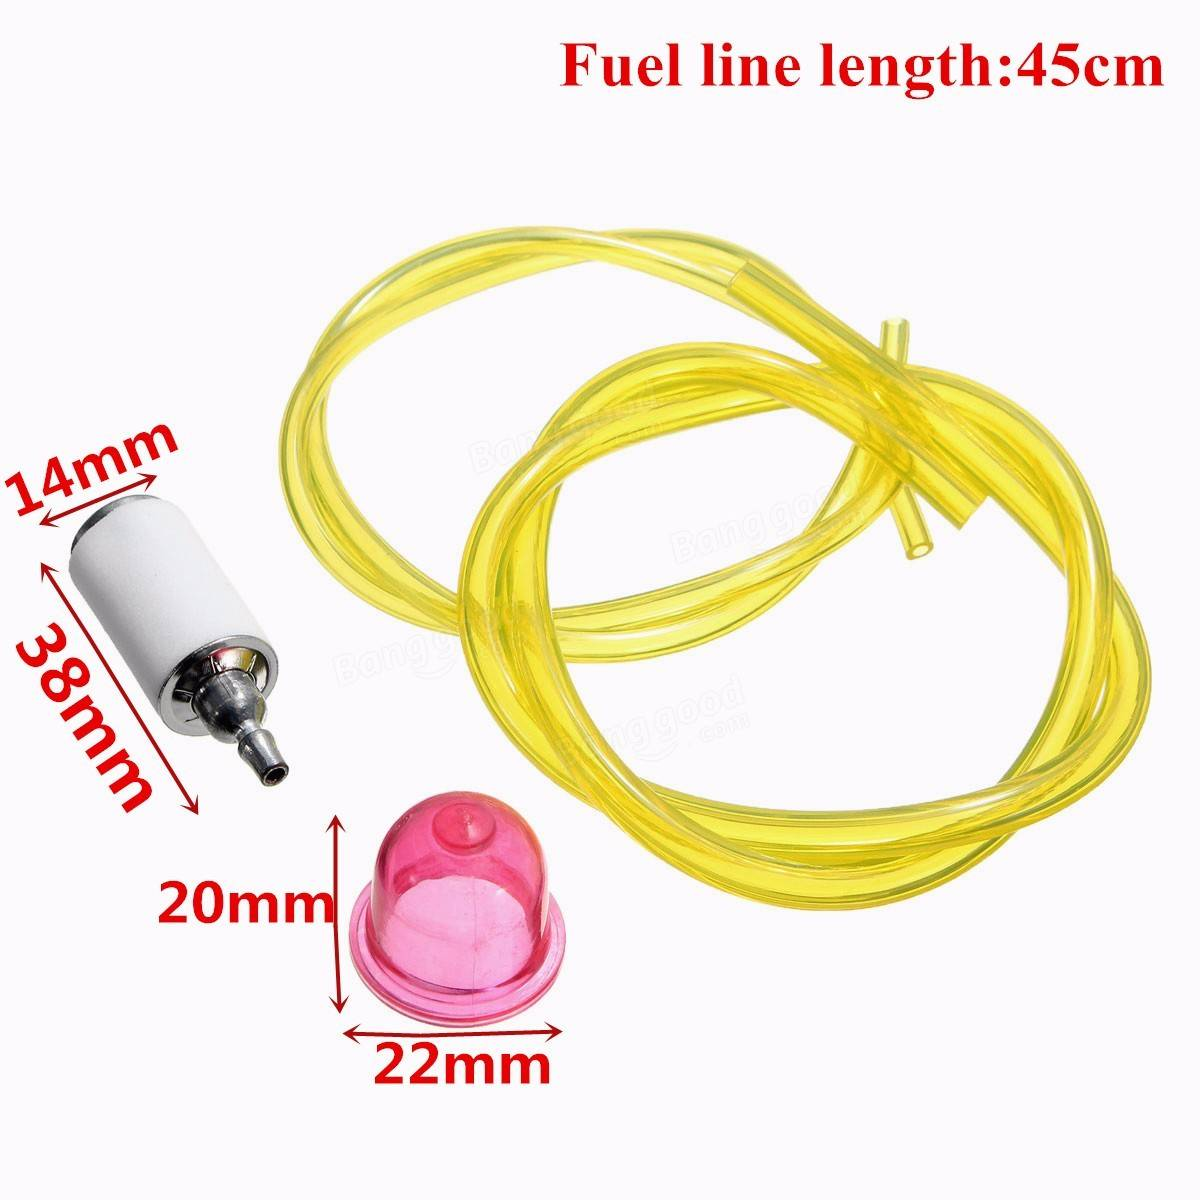 hight resolution of for just us 3 99 buy gardening mower weedeater gas fuel line filter for poulan craftsman weed eater from the china wholesale webshop